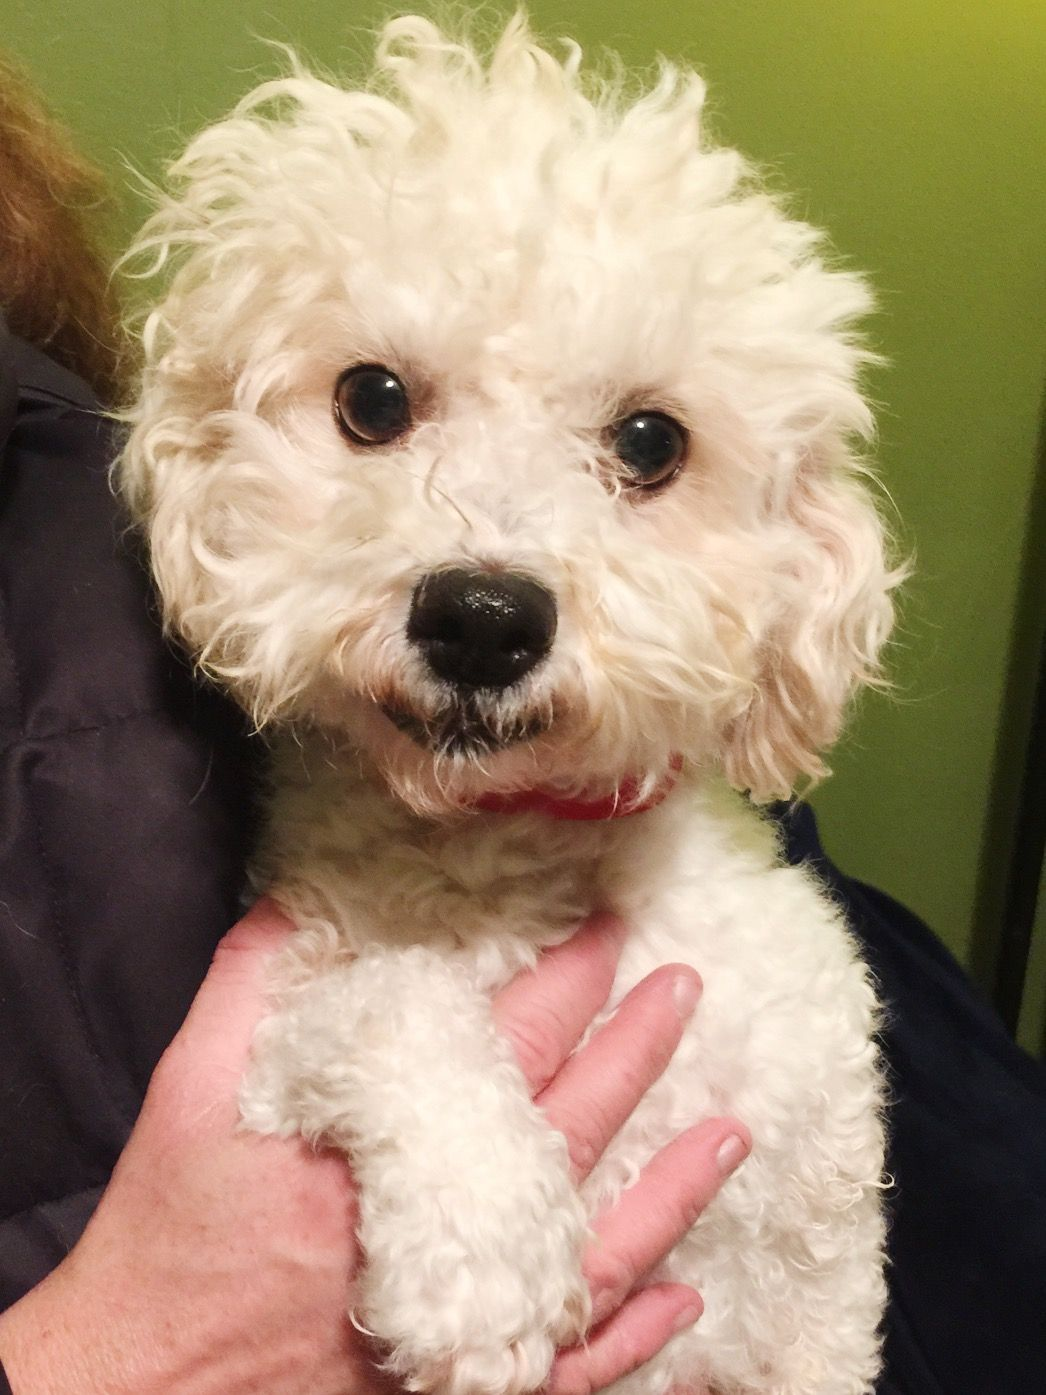 Bichon Frise dog for Adoption in St. Louis Park, MN. ADN